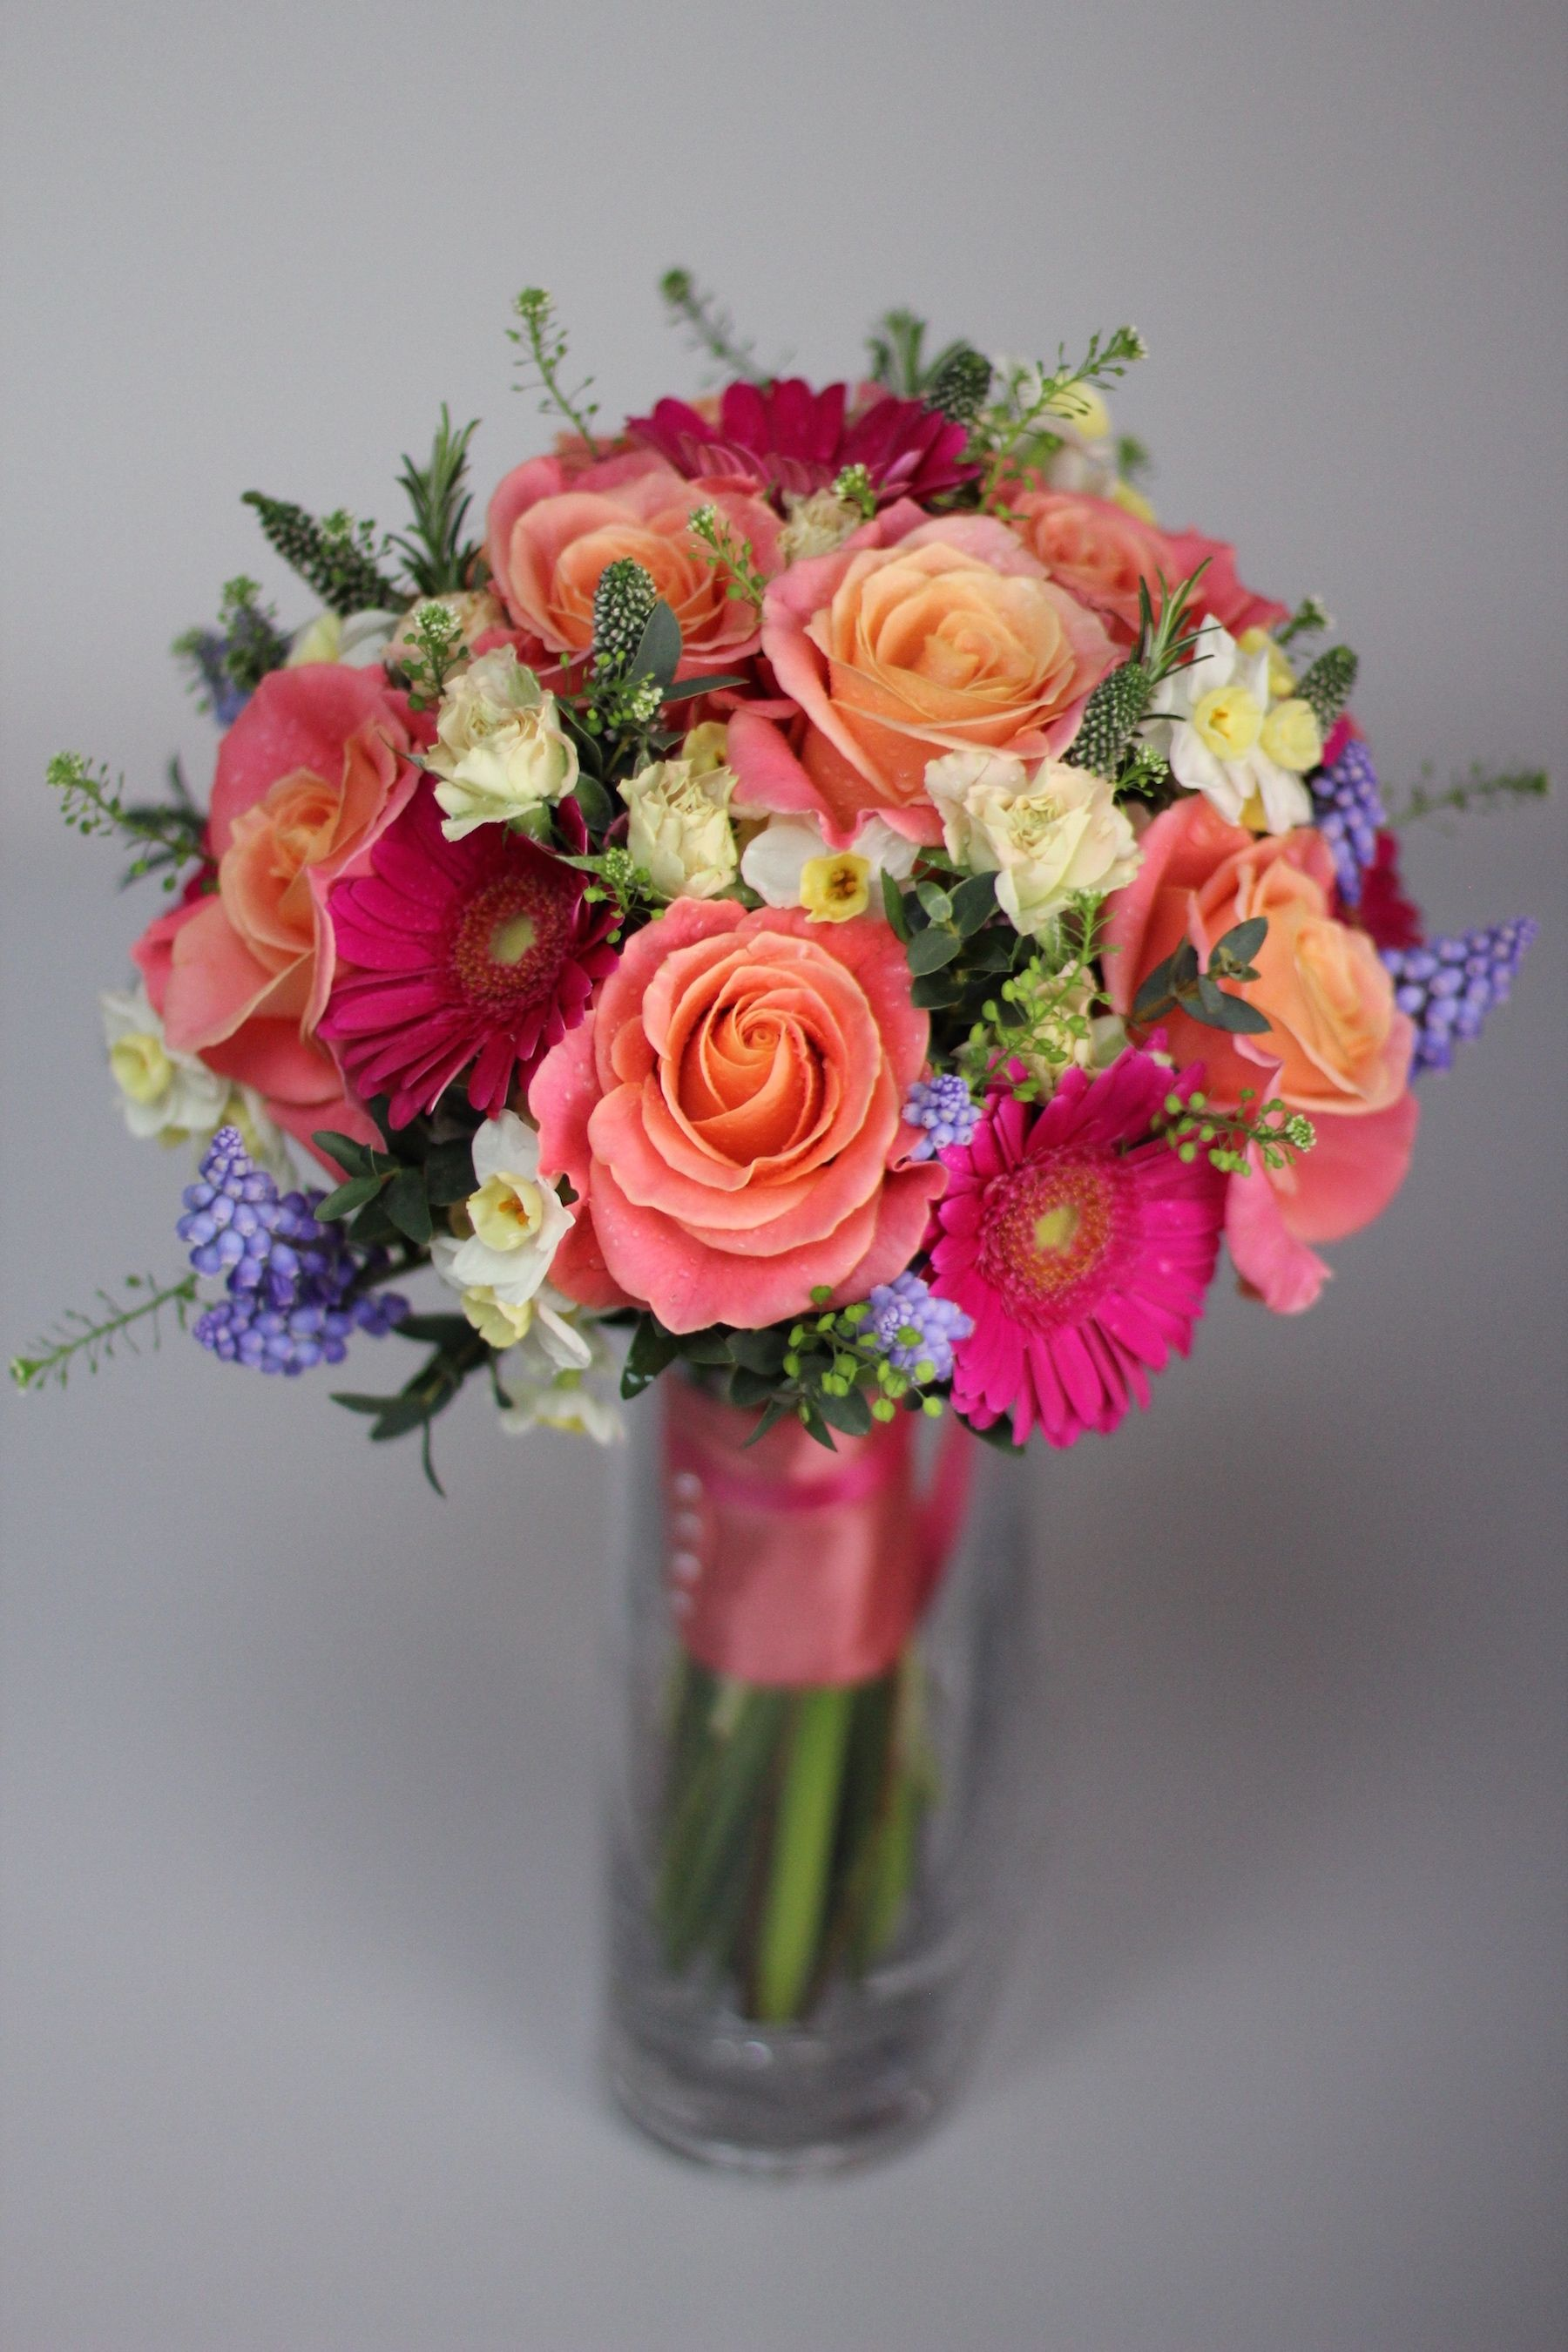 Gorgeous bridal bouquet with vibrant pink and orange tones ...